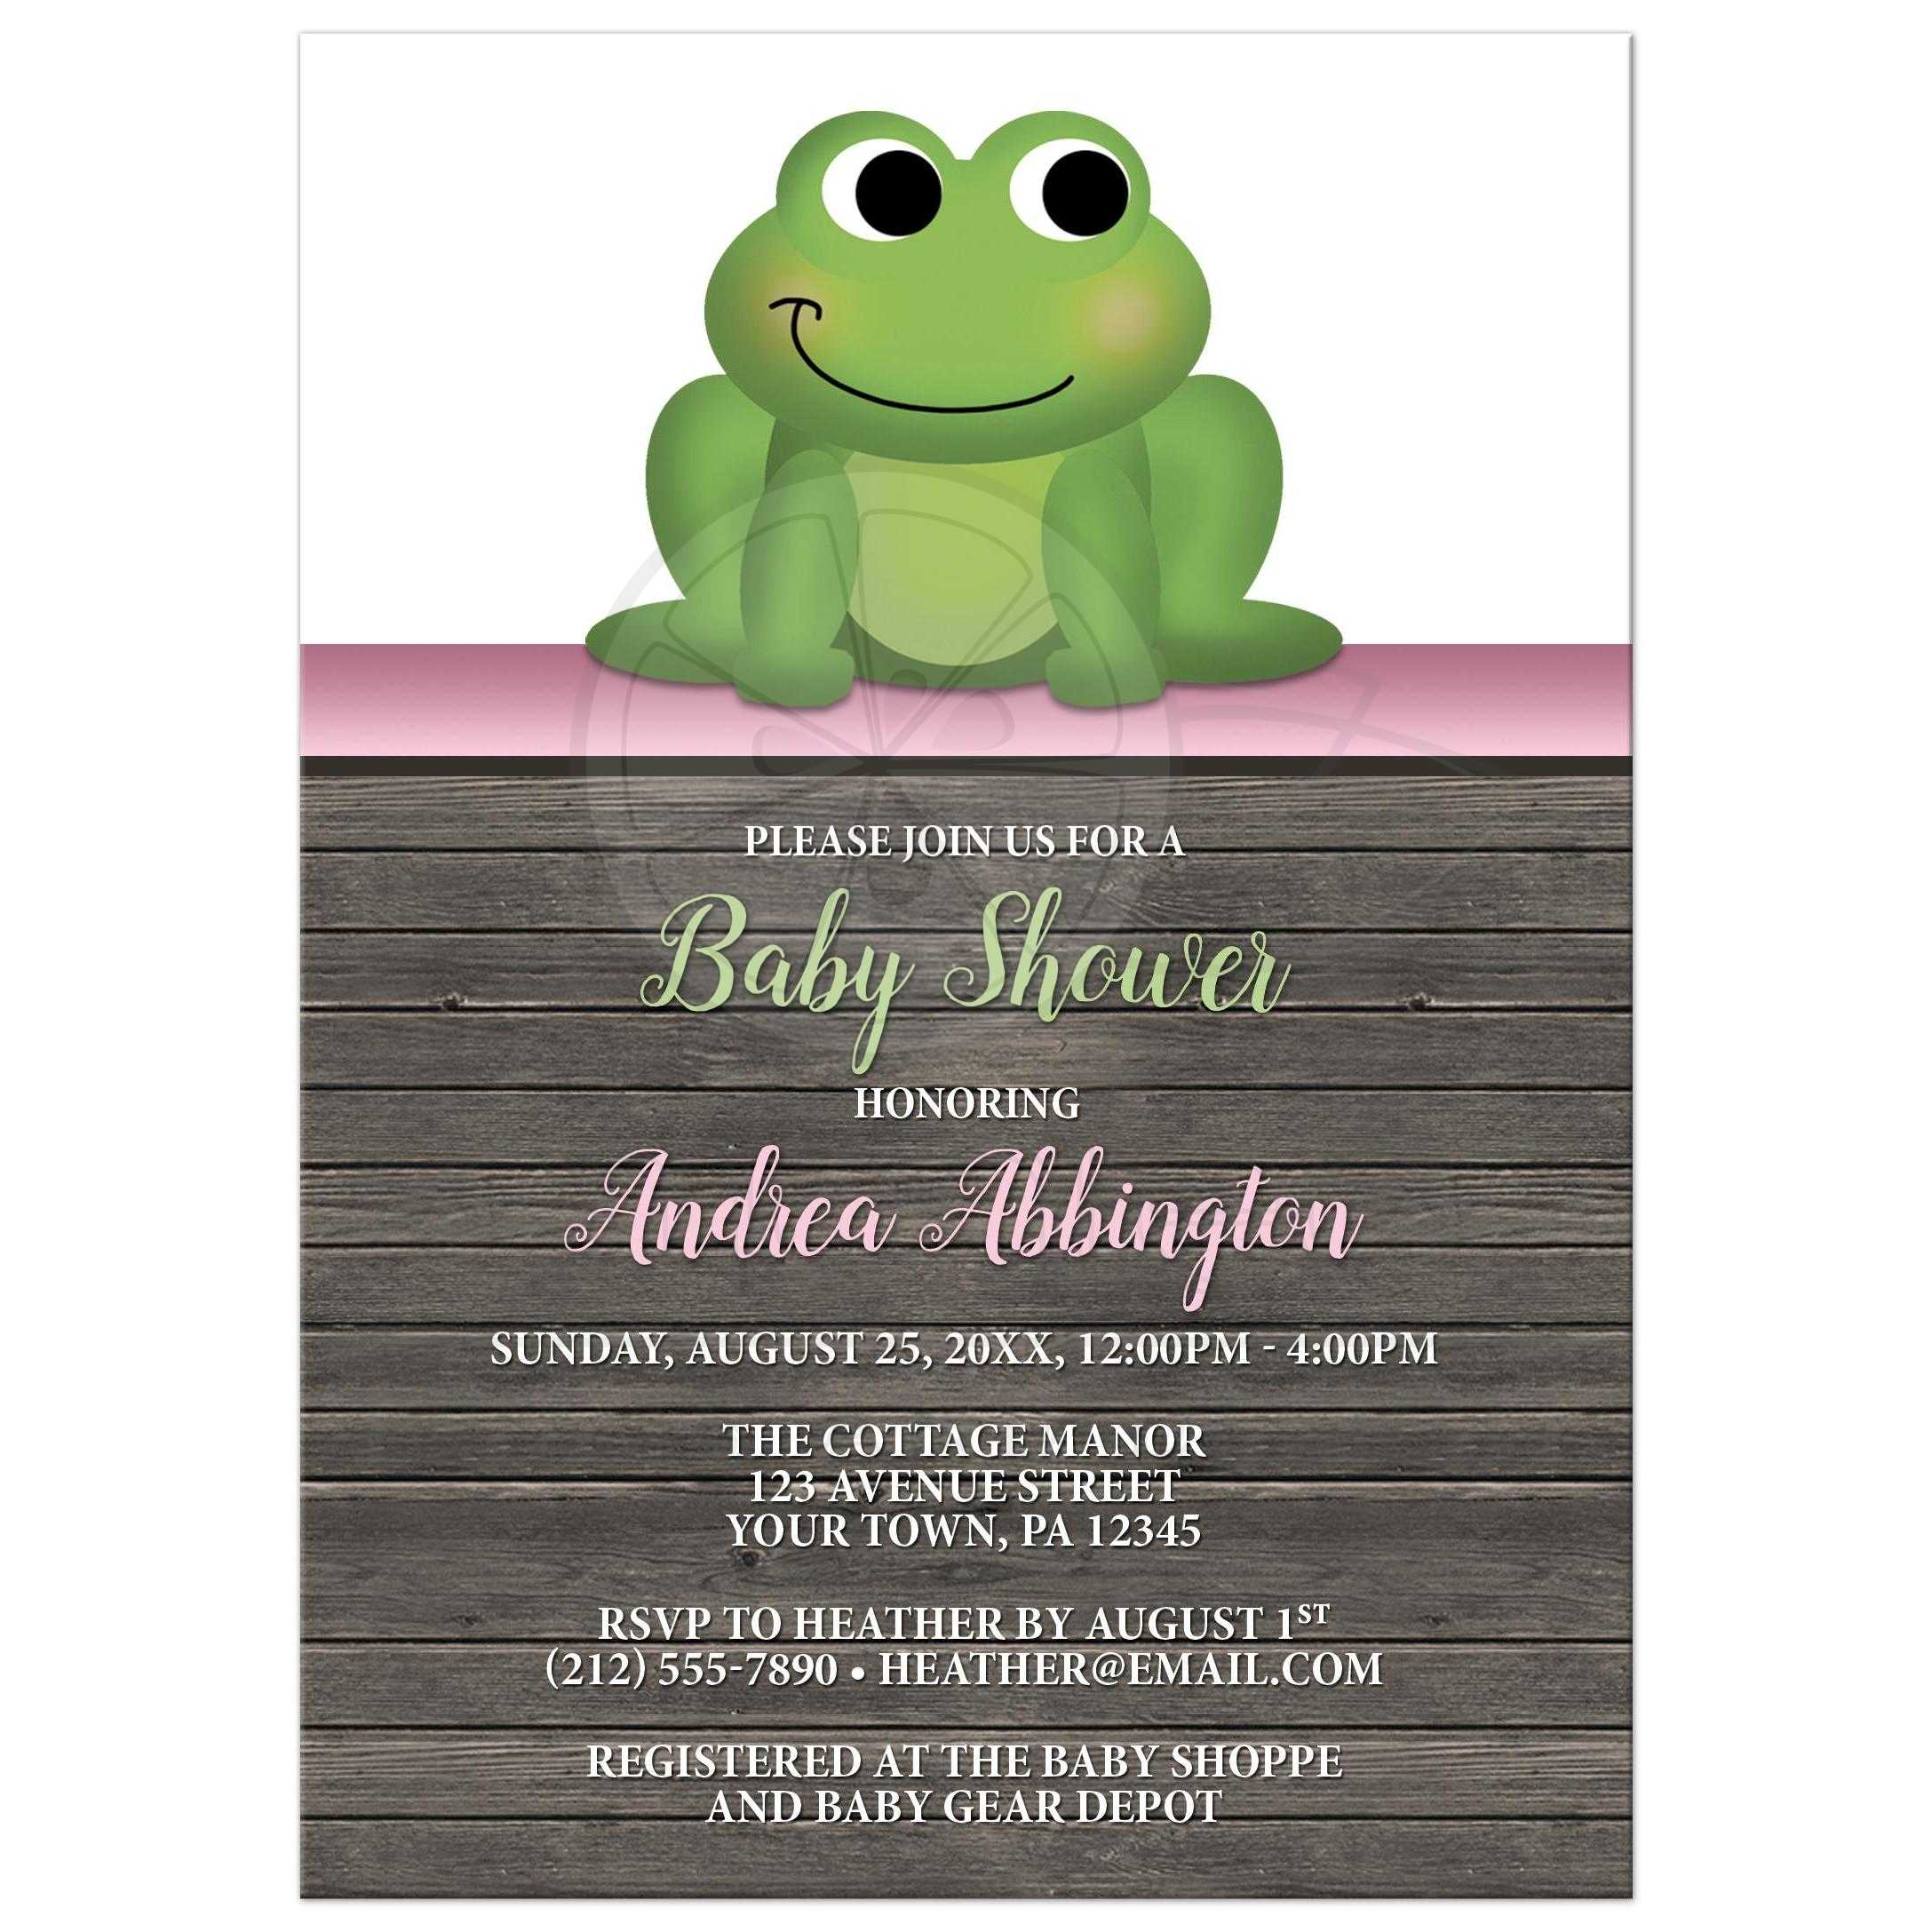 Baby shower invitations cute frog green pink rustic wood filmwisefo